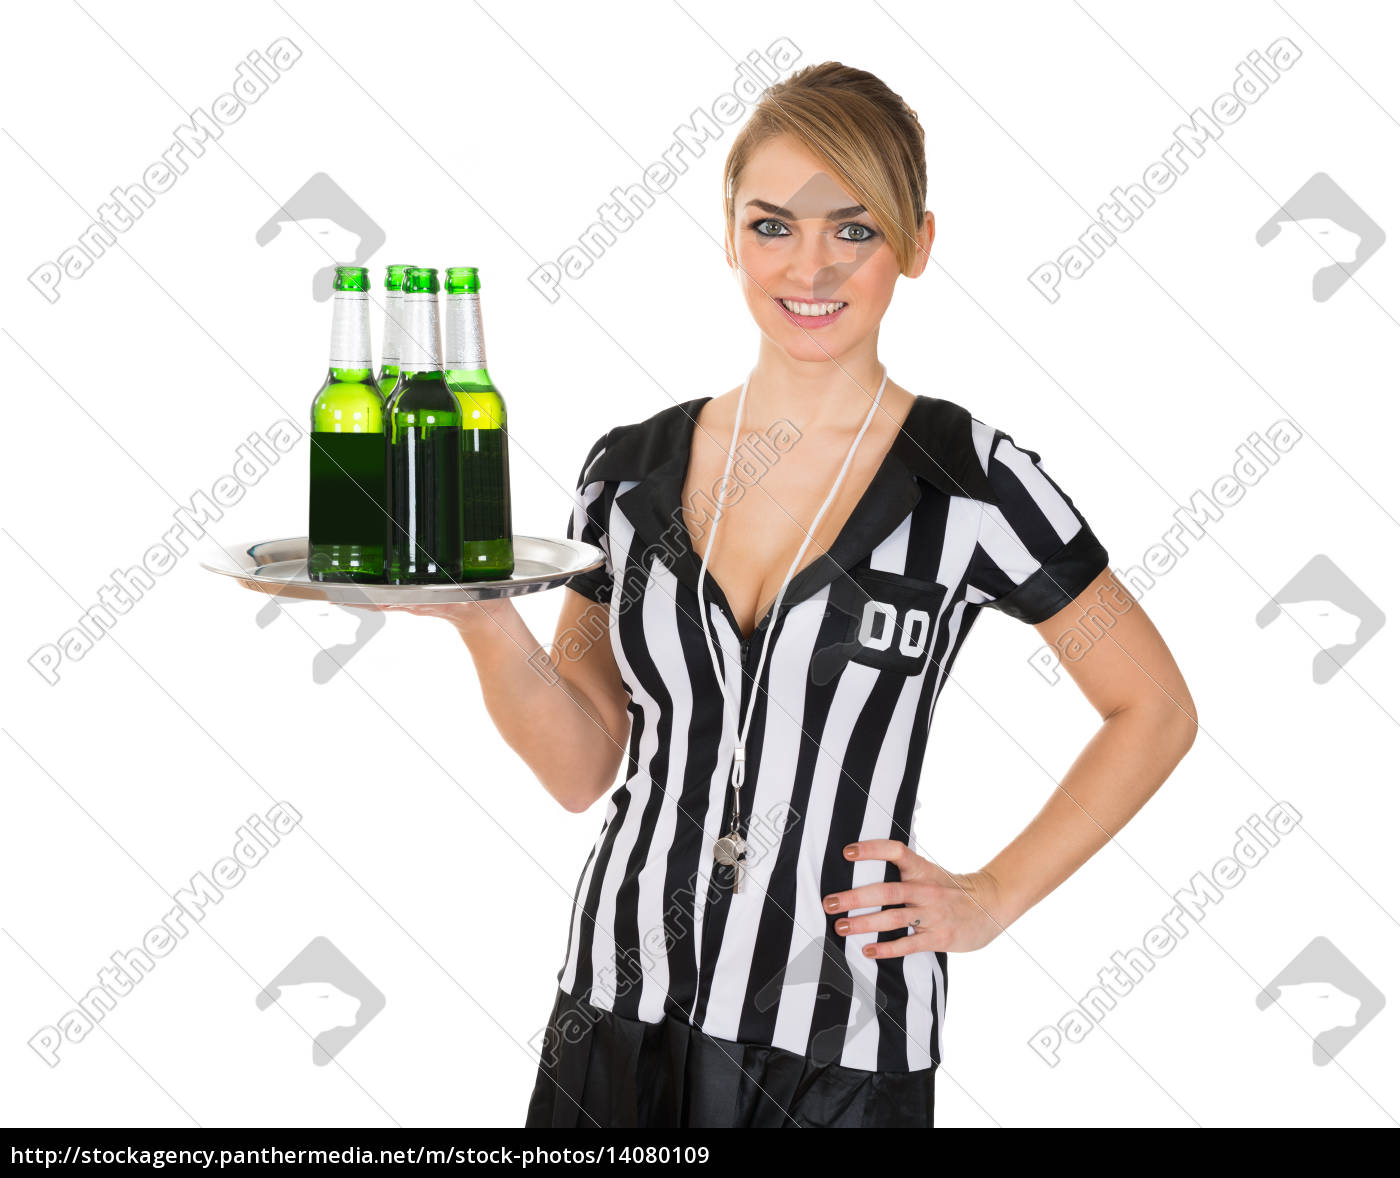 female, referee, with, drinks, on, tray - 14080109